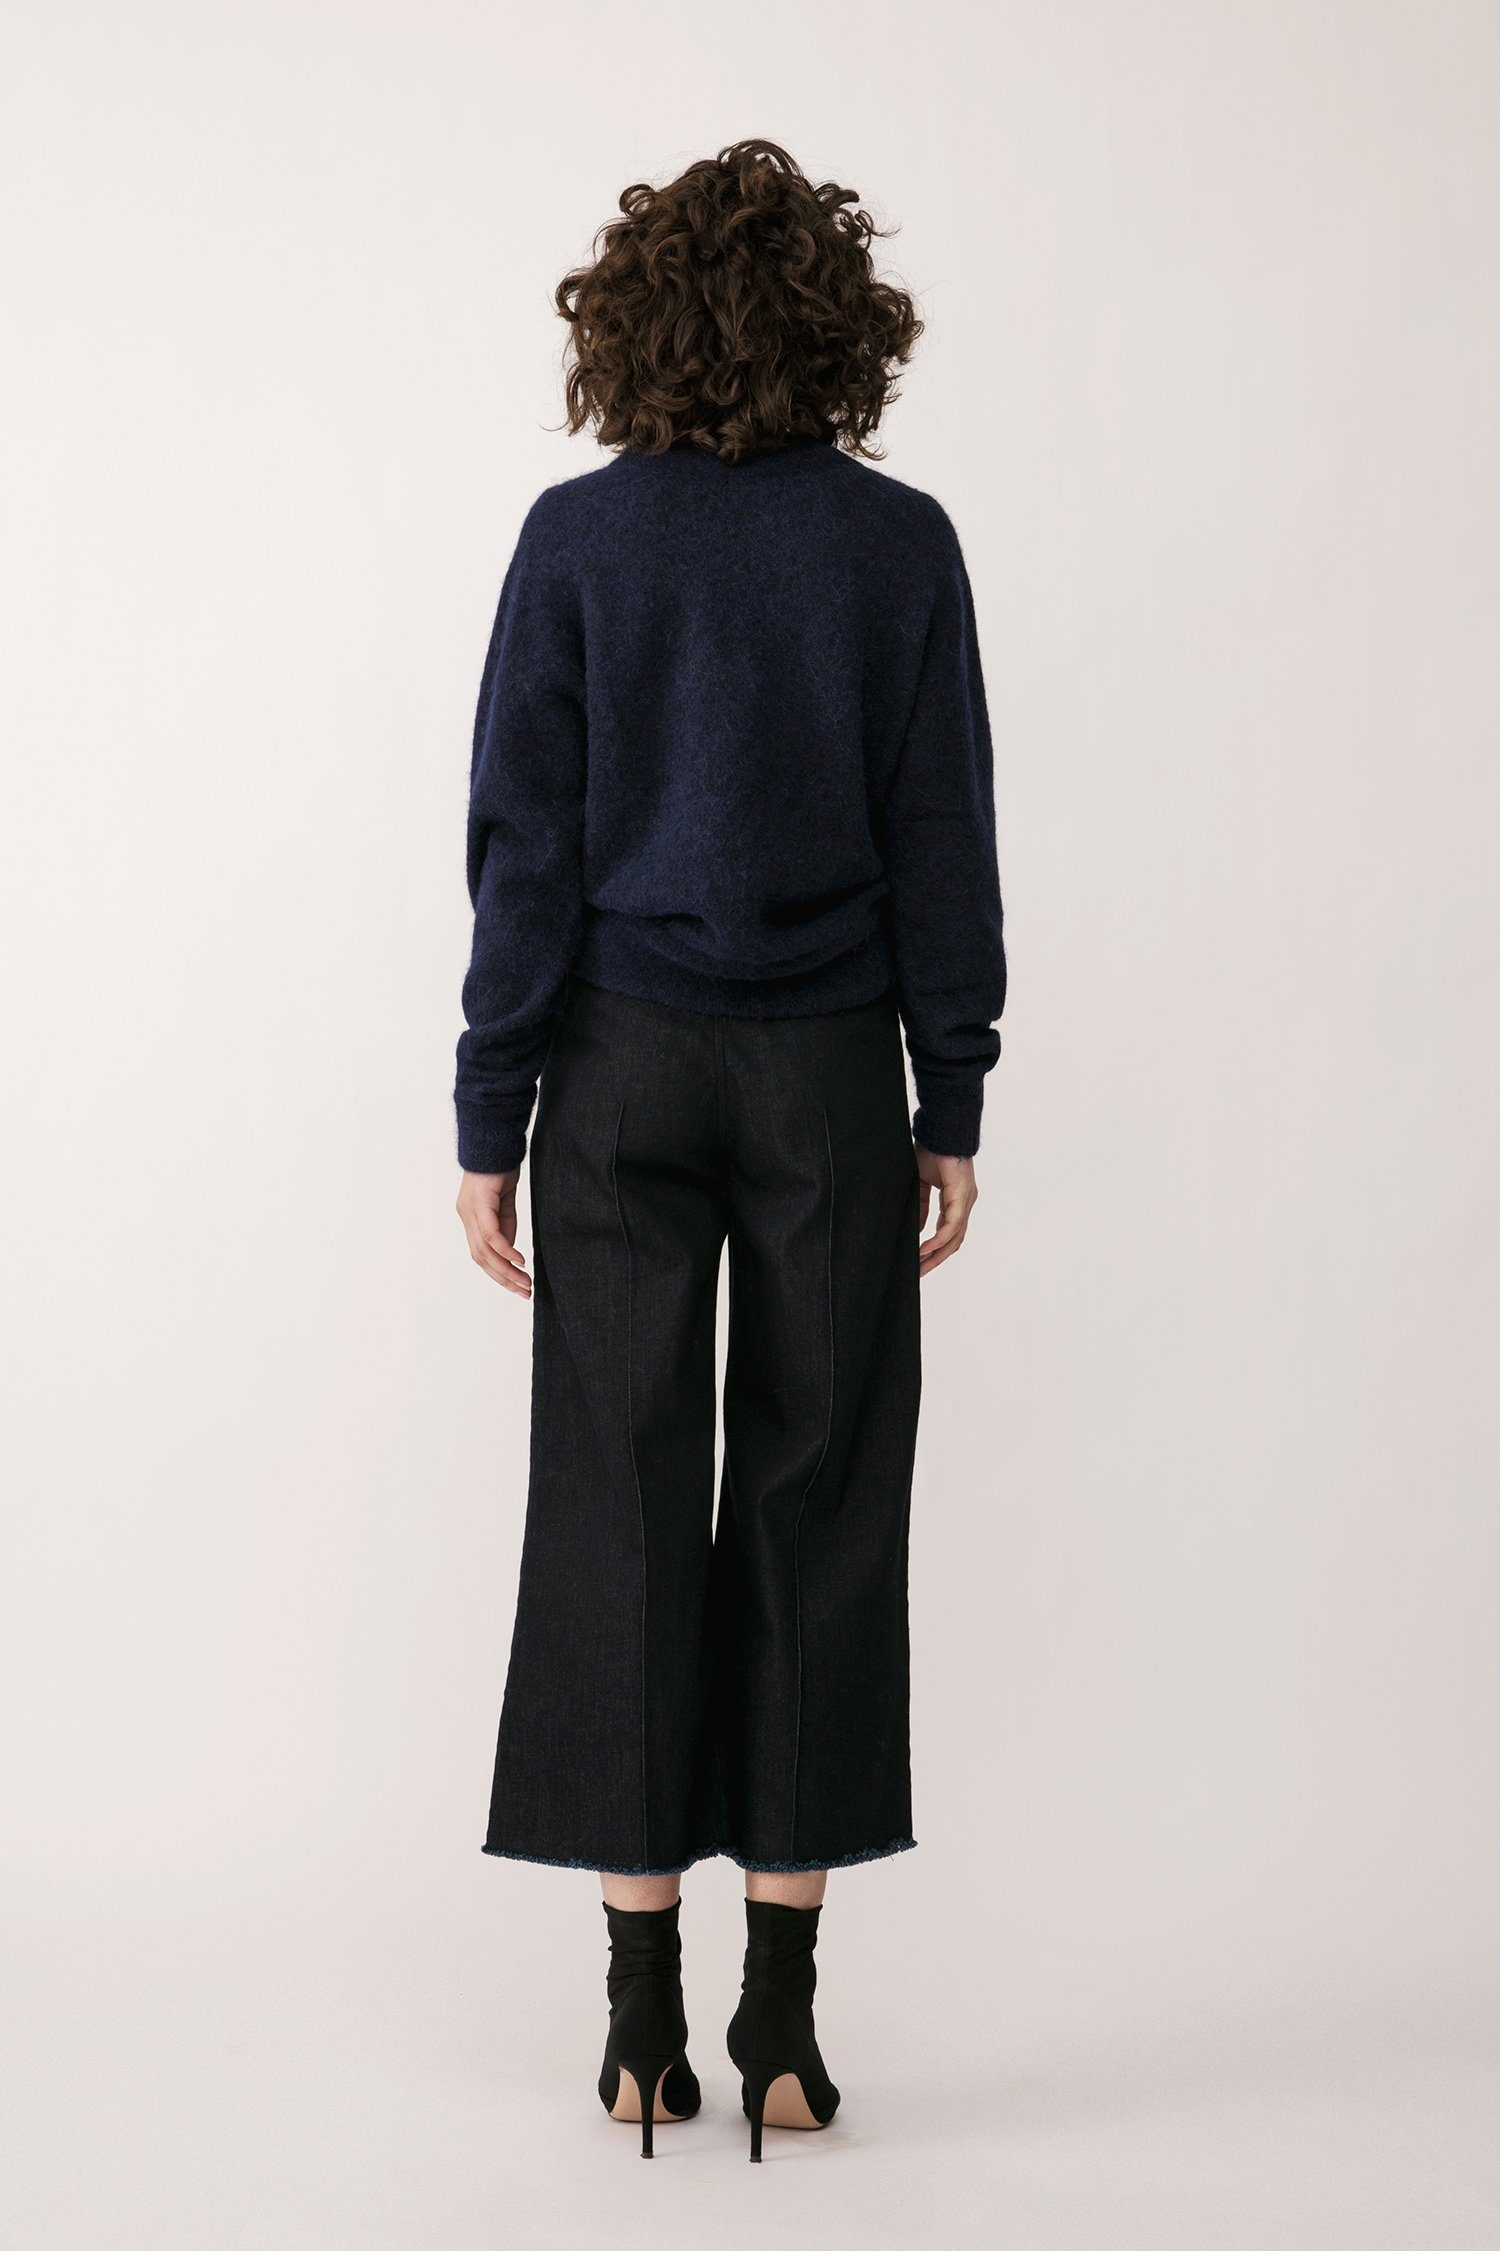 ELLERY SWEATER - NAVY Sweater Stylein